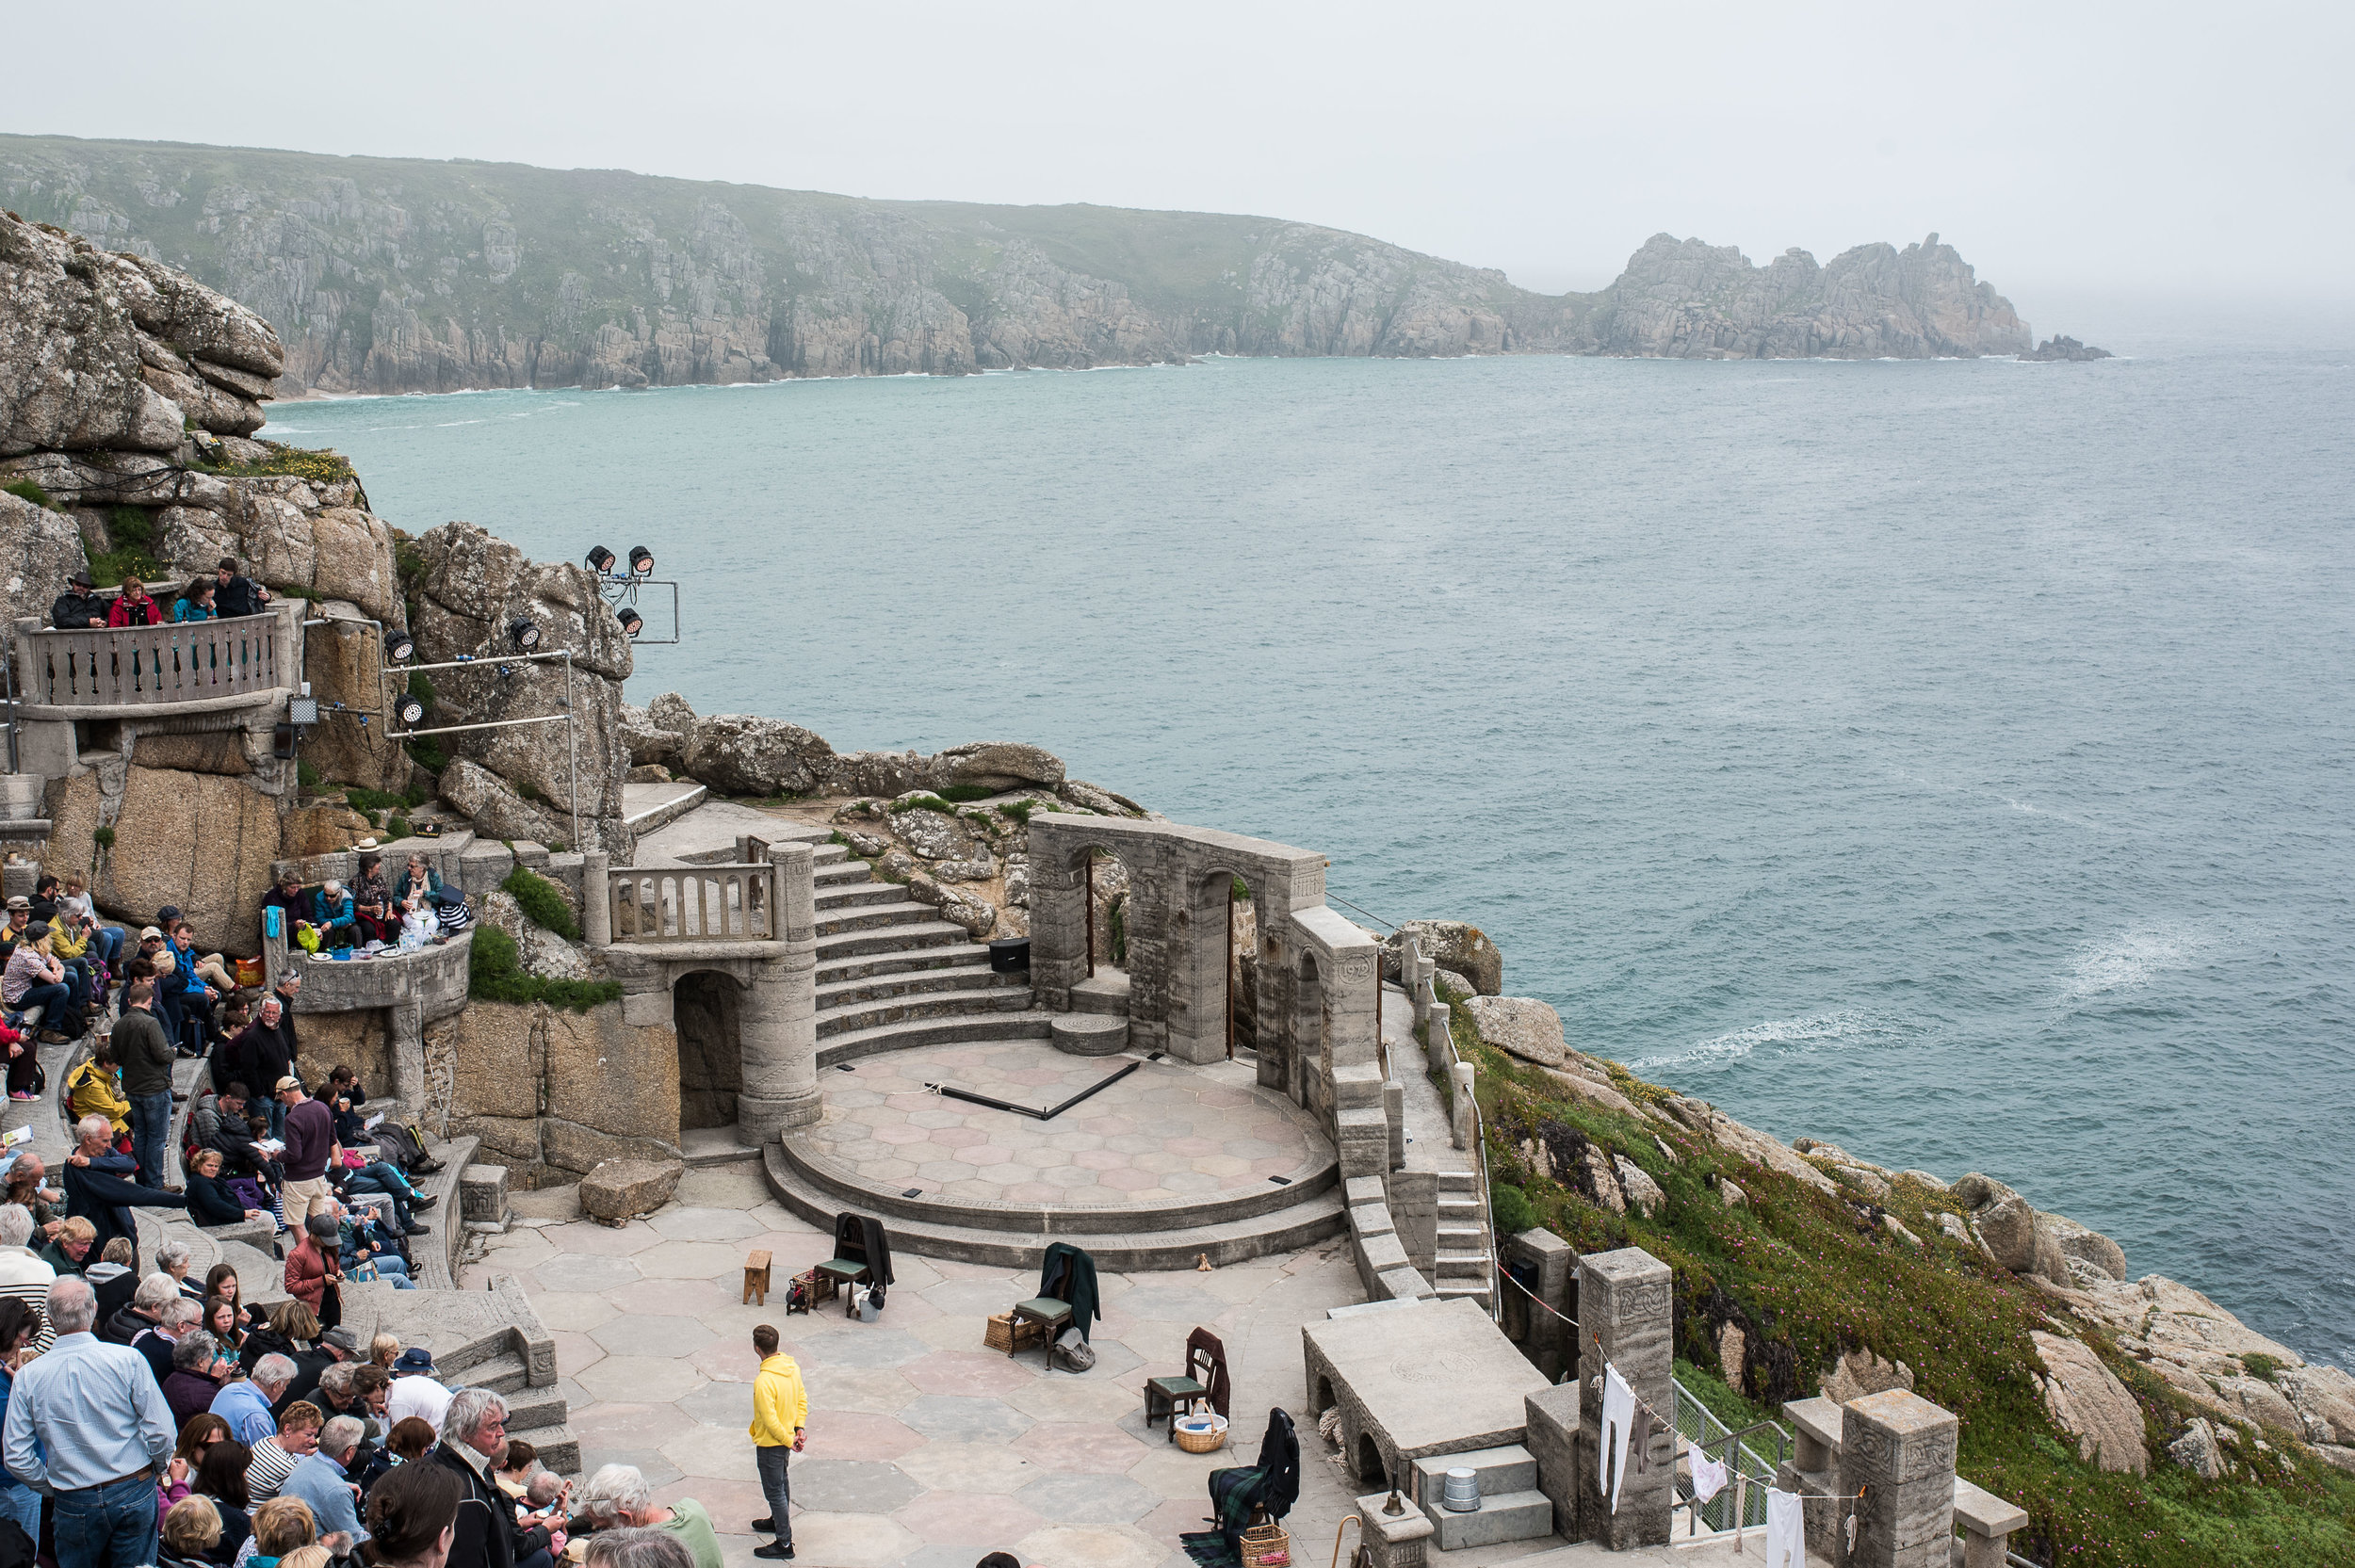 On what was our only drizzly day of our trip, we saw  Under the Milk Wood  in this gorgeous outdoor theater. To be honest, it was hard to focus on the plot rather than the scenery.